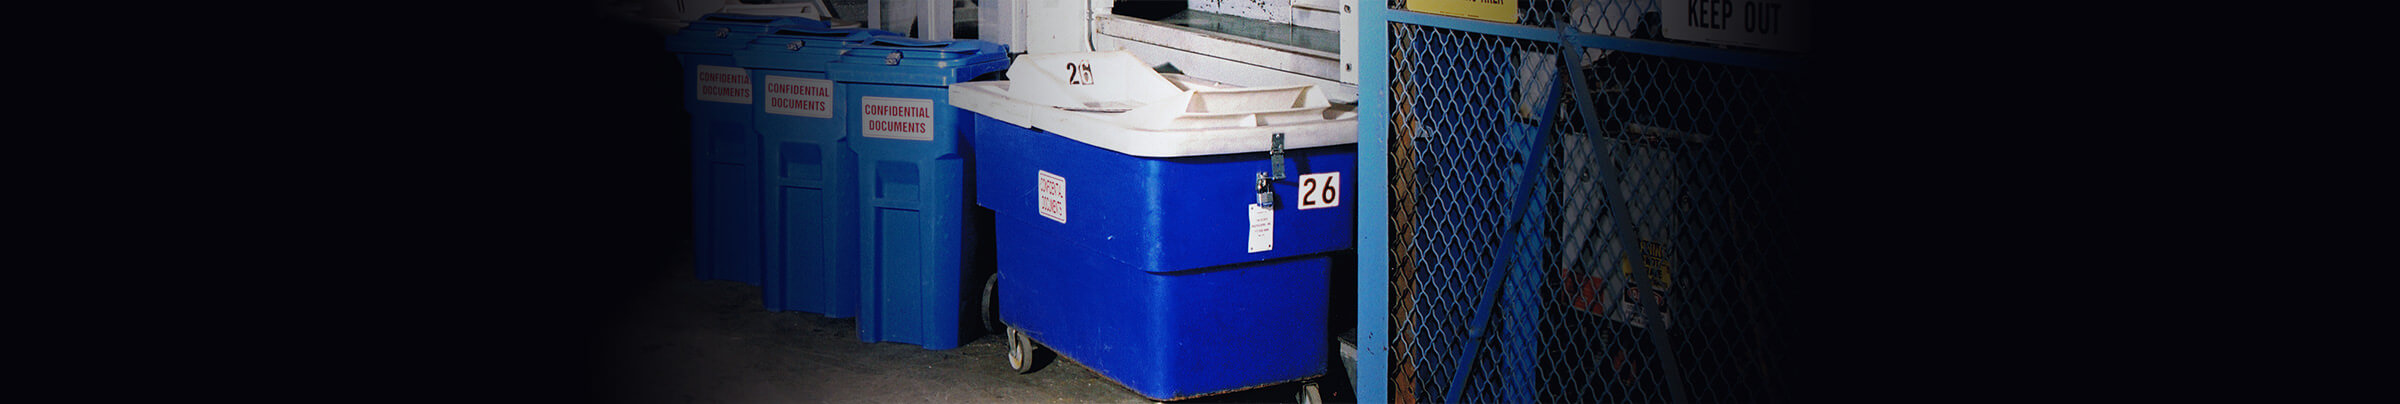 TRI-STATE SHREDDING OFFERS A WIDE VARIETY OF LOCKABLE SECURITY CONTAINERS!